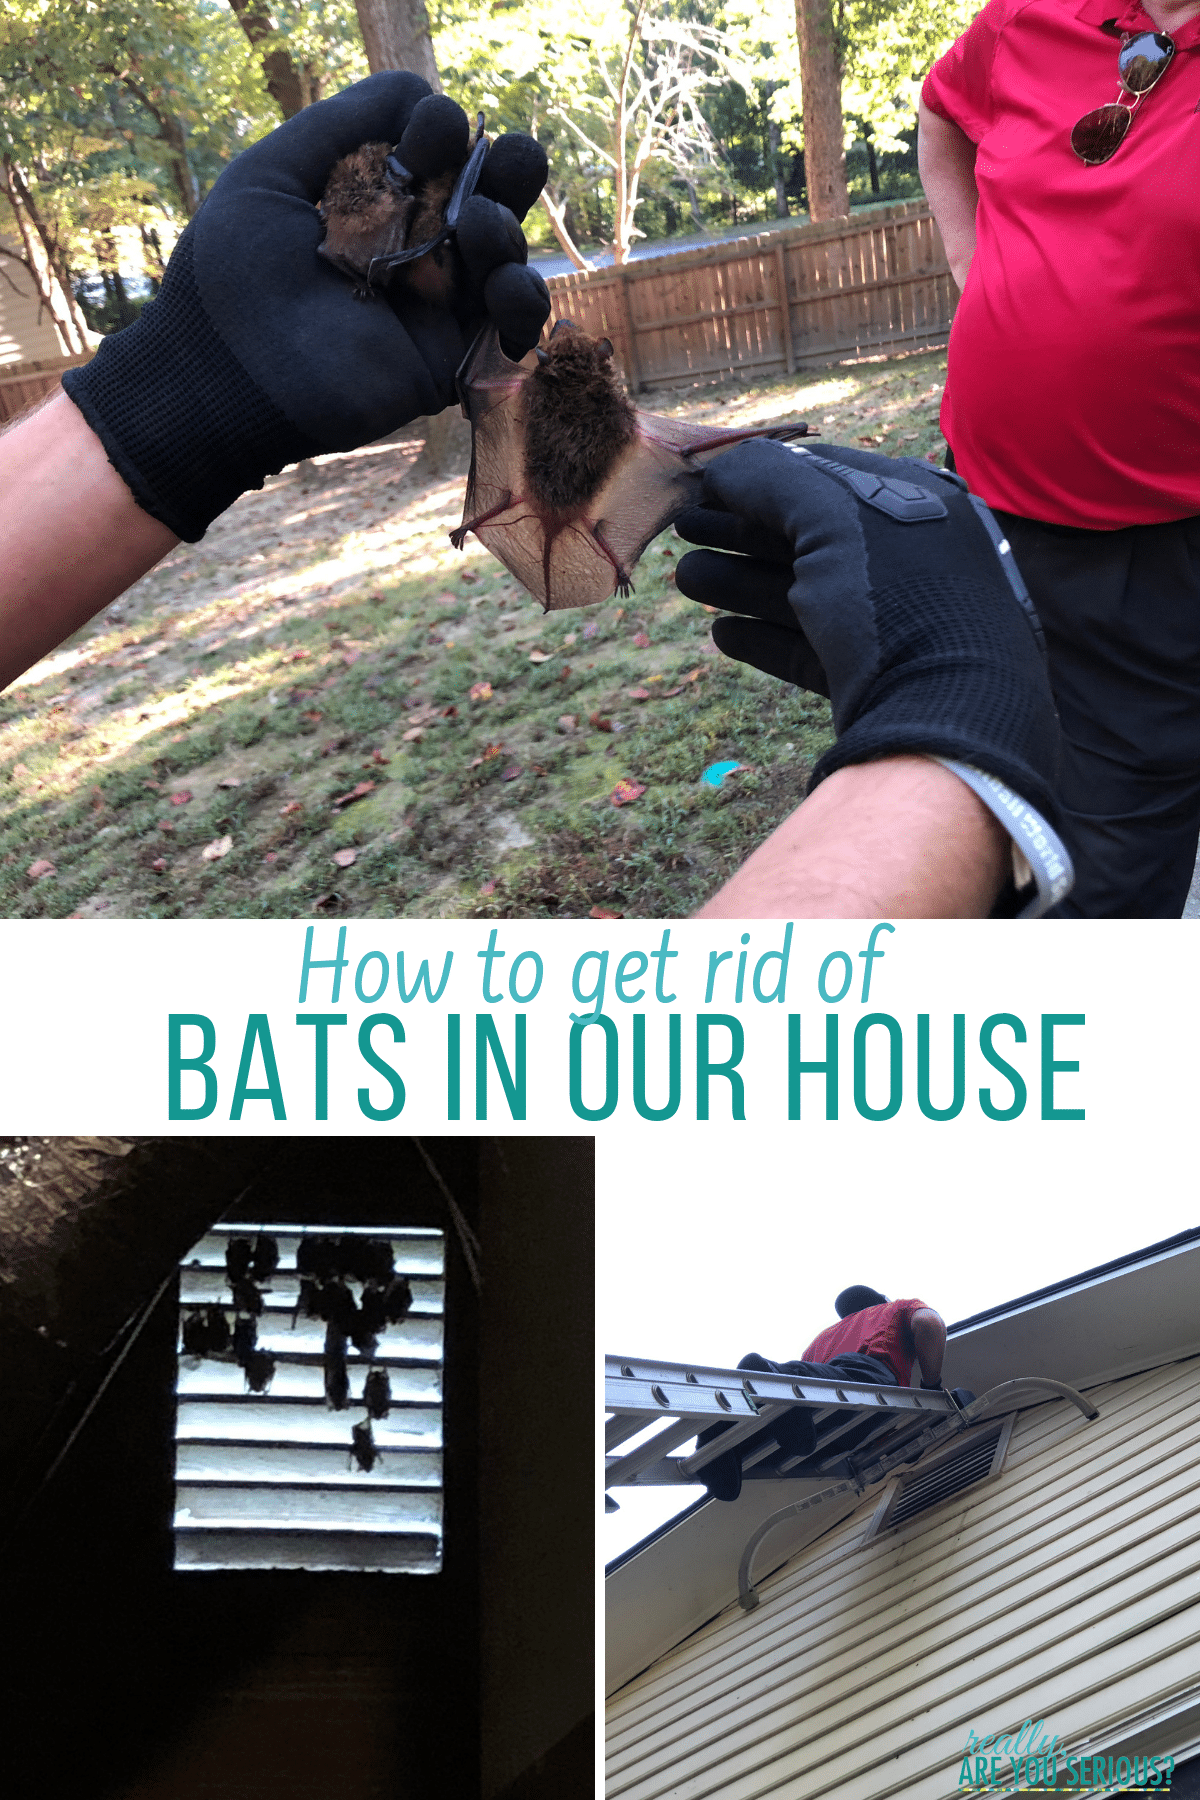 Get rid of bats in house